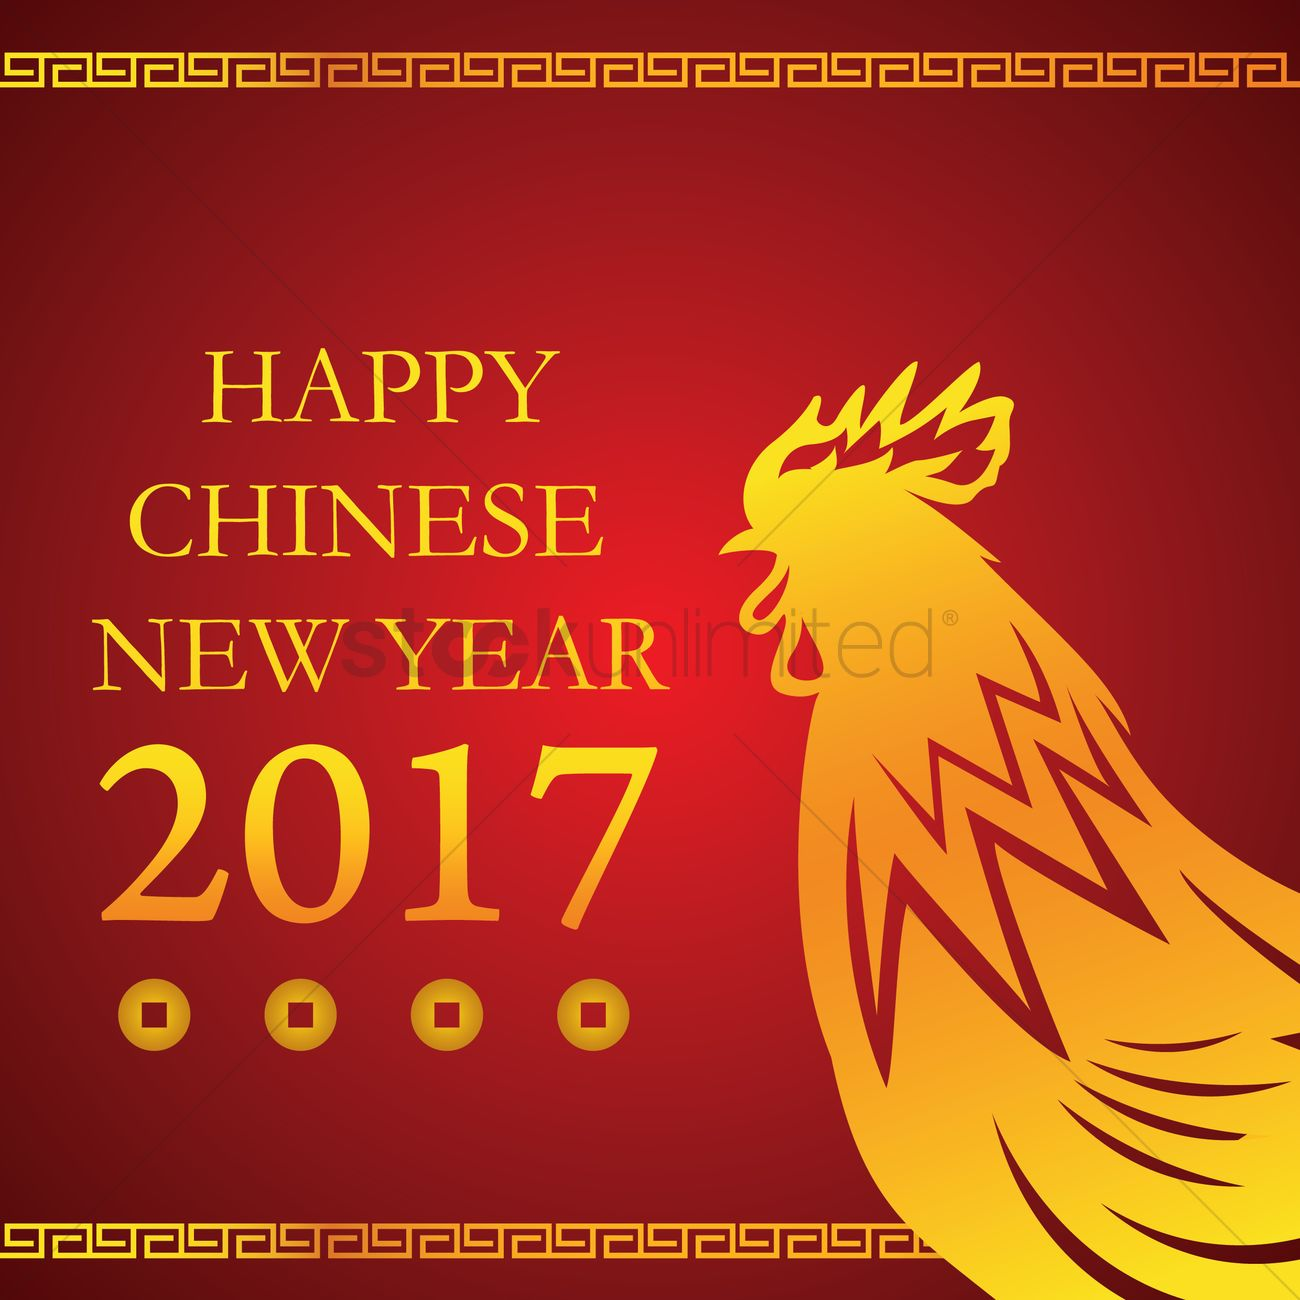 Chinese New Year 2017 Vector At Getdrawings Free Download